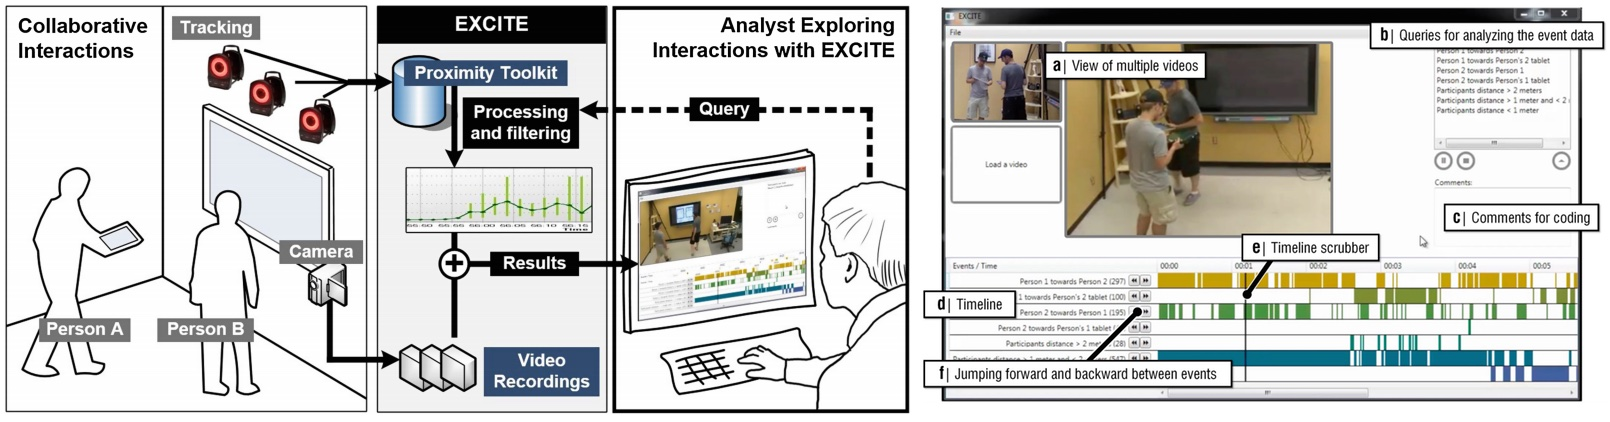 EXCITE allows us to study <em>how</em> people are collaborating within multi-surface environments, allowing us to track and make sense of their actions and activities.